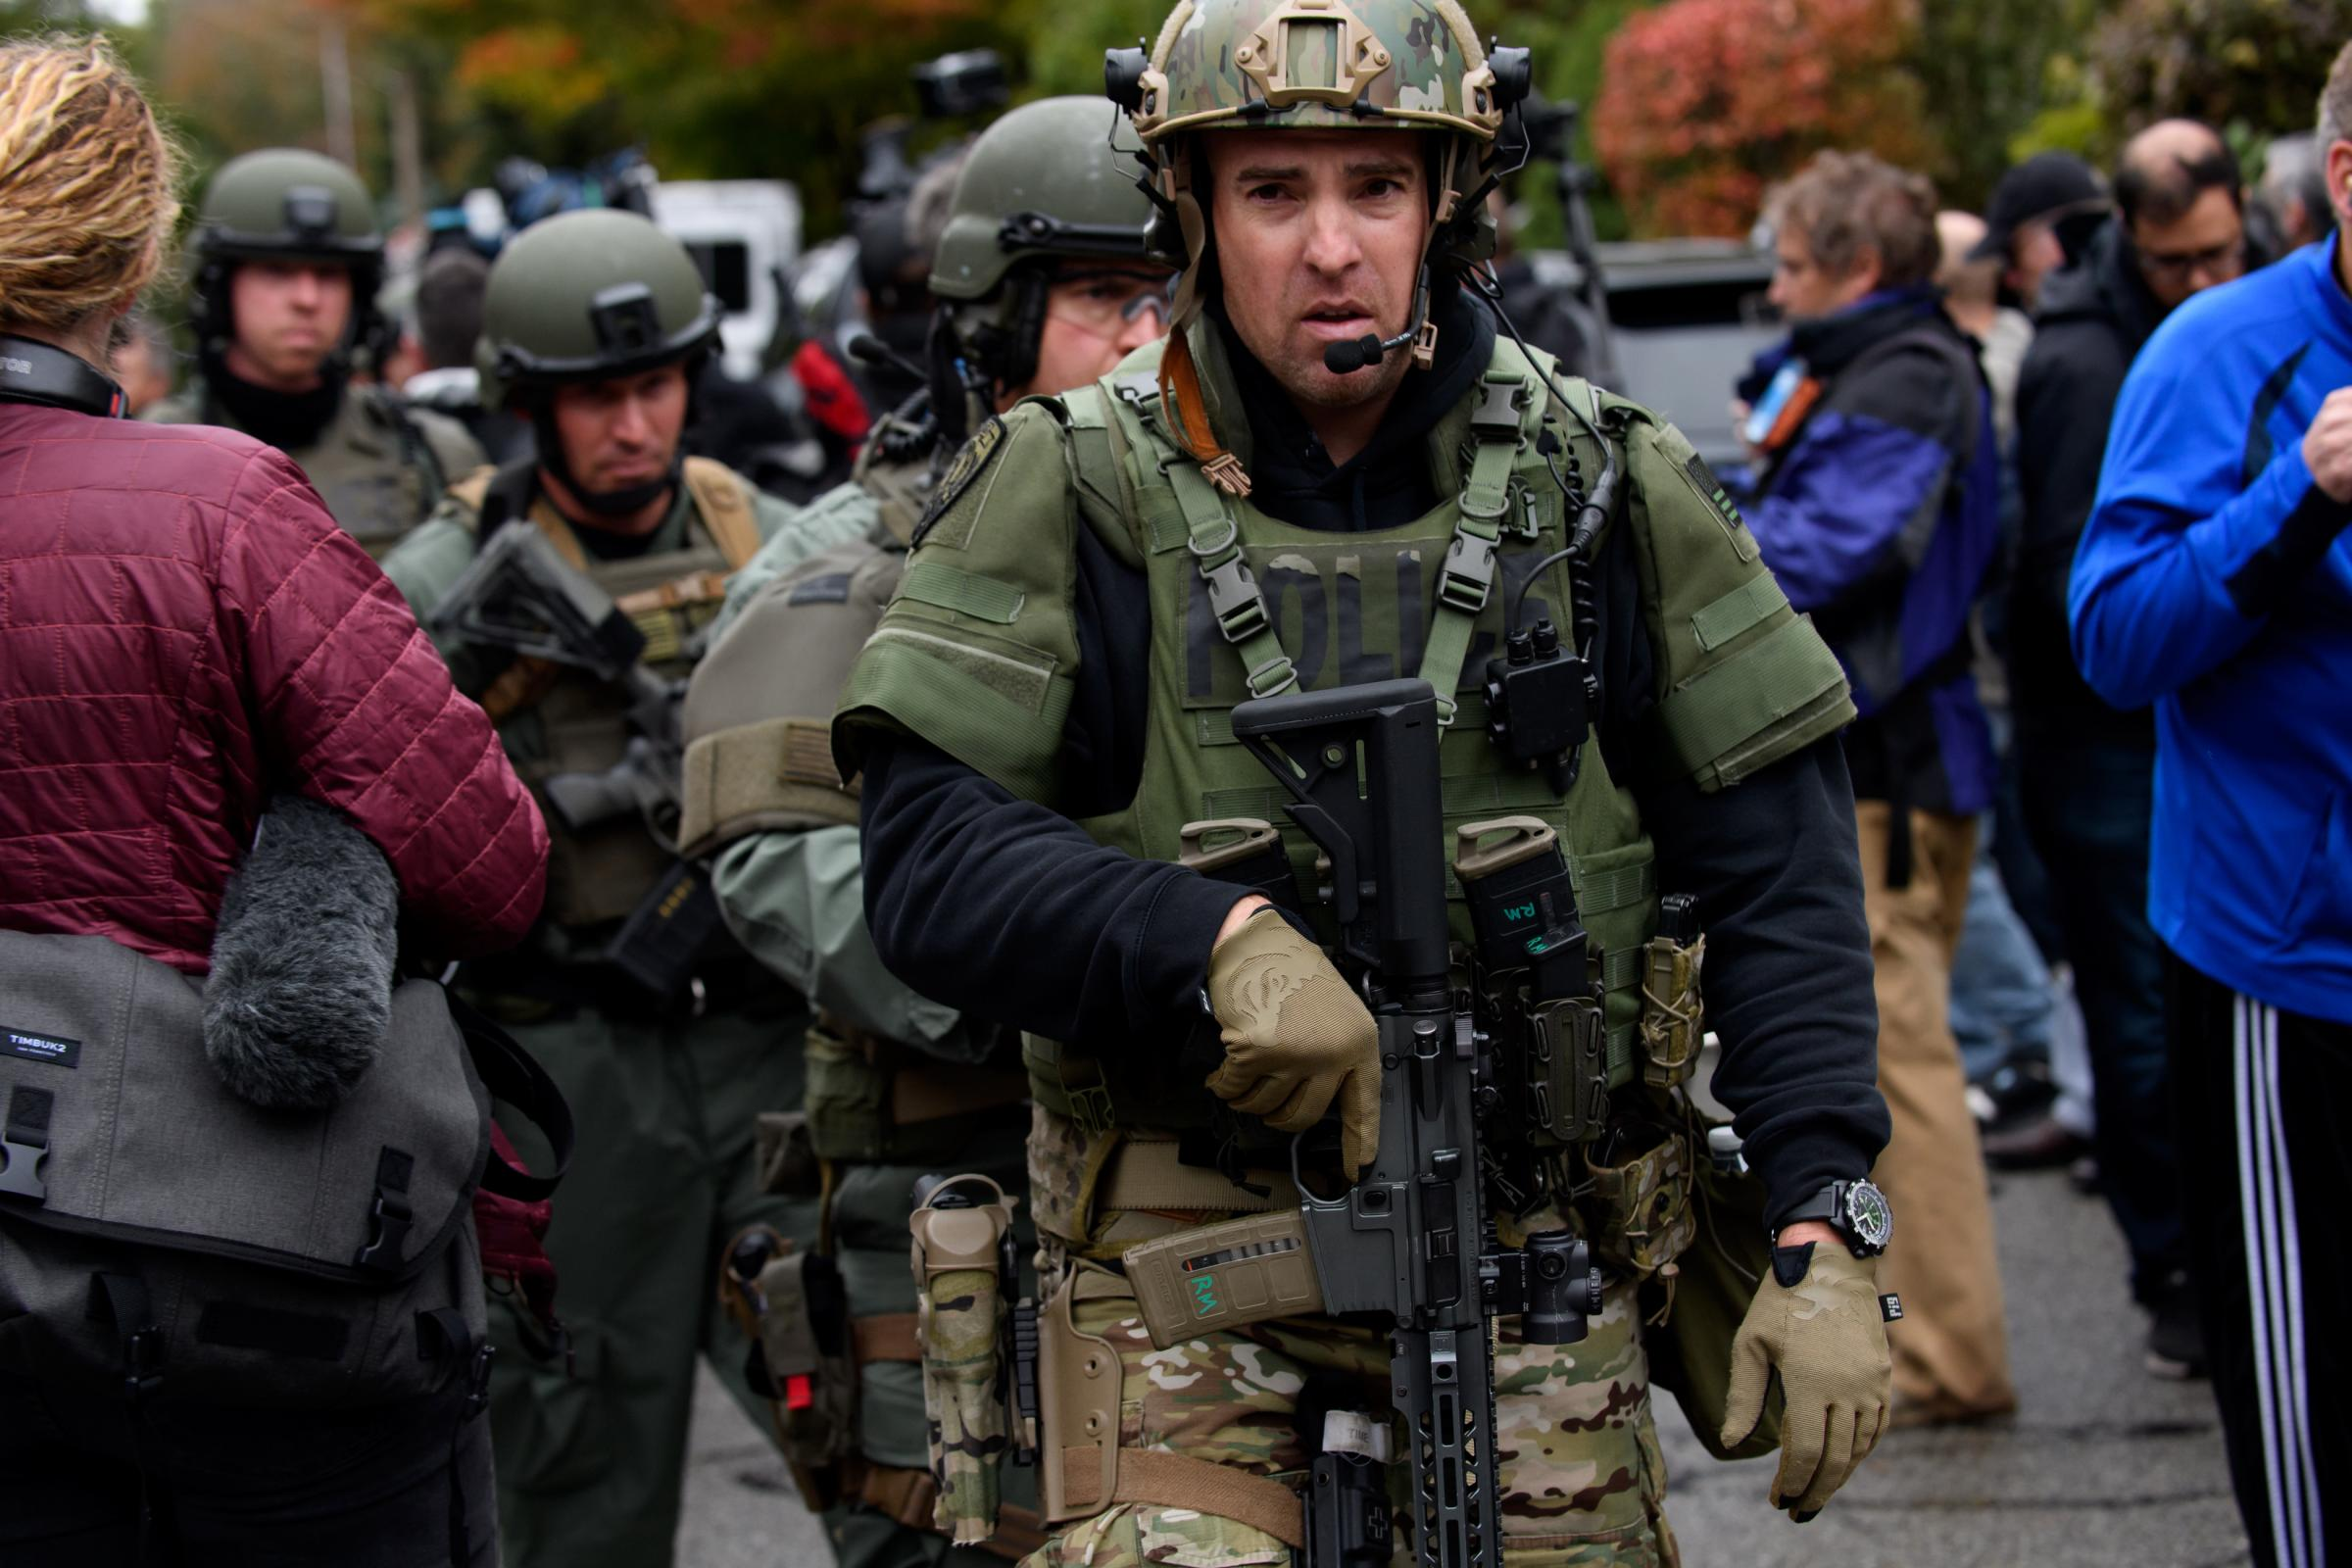 Rapid reaction SWAT members at the scene of a mass shooting at the Tree of Life Synagogue in Pittsburgh, Pennsylvania last Saturday. (Photo by Jeff Swensen/Getty Images)